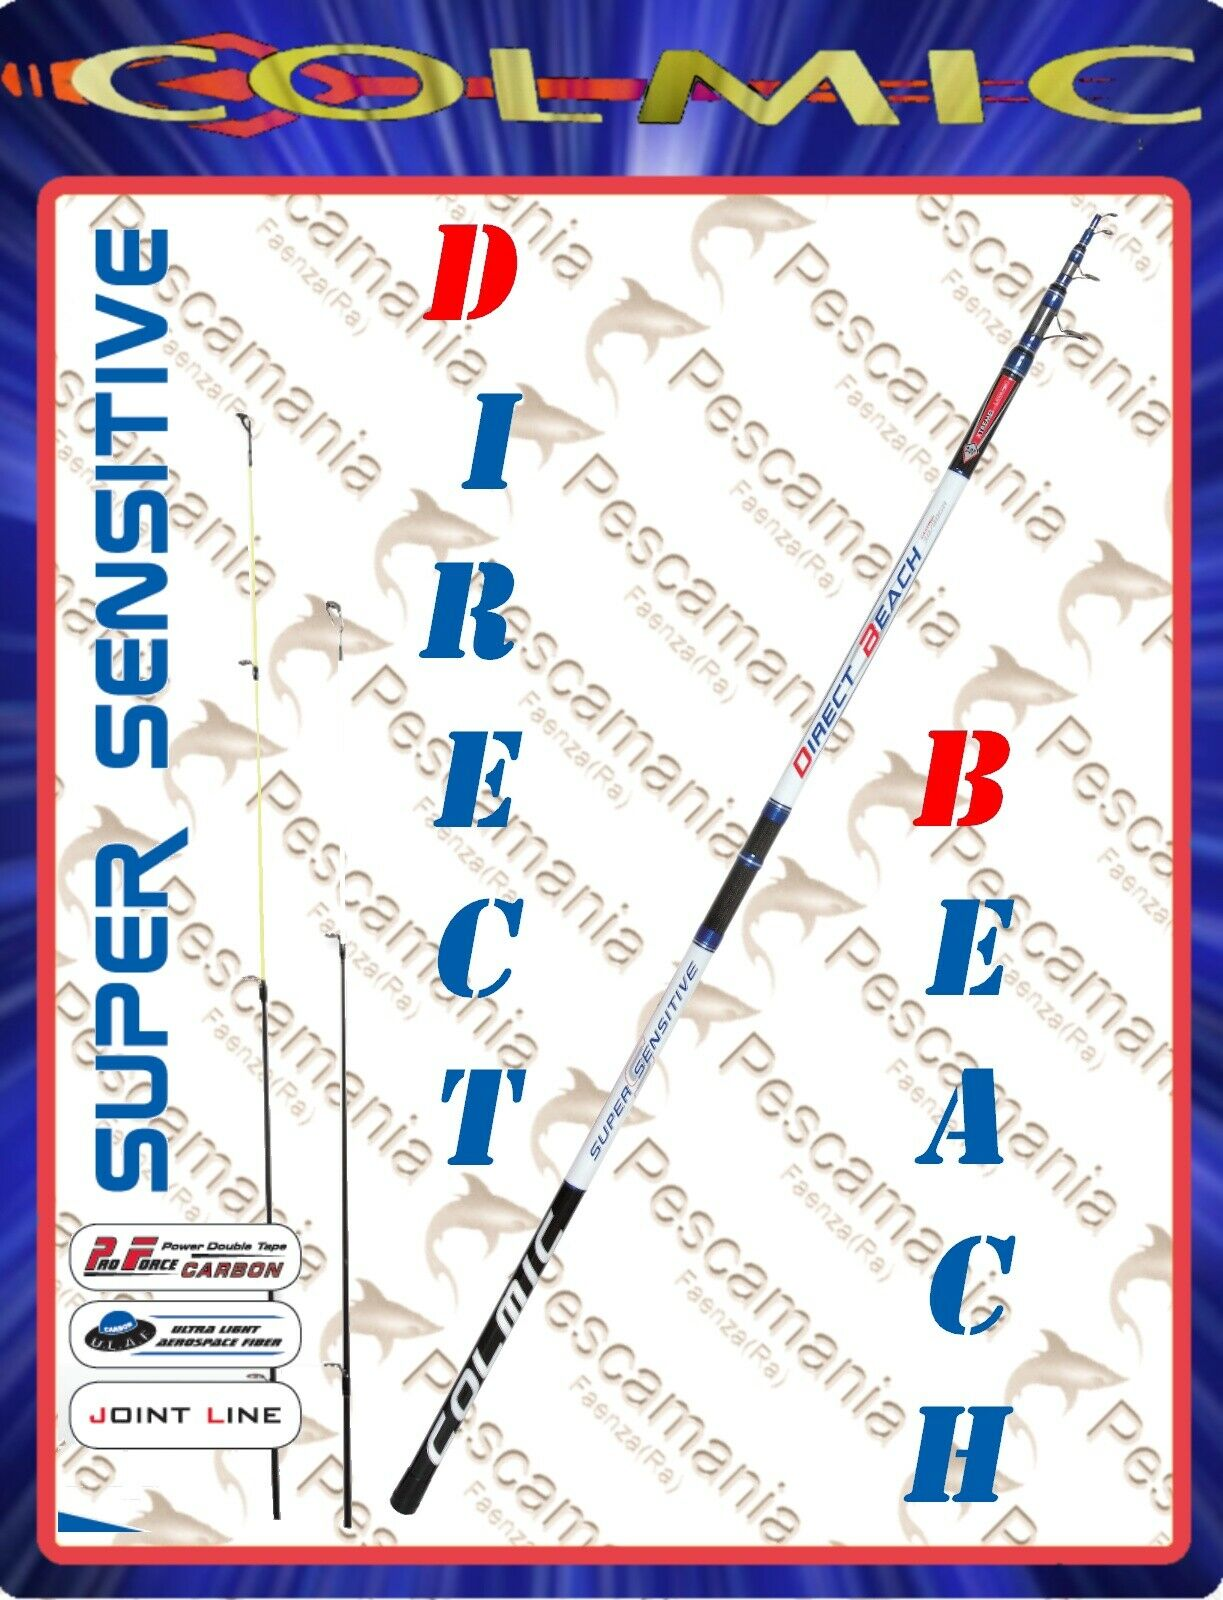 Canna colmic Direct beach ledgering casting 30-80 gr